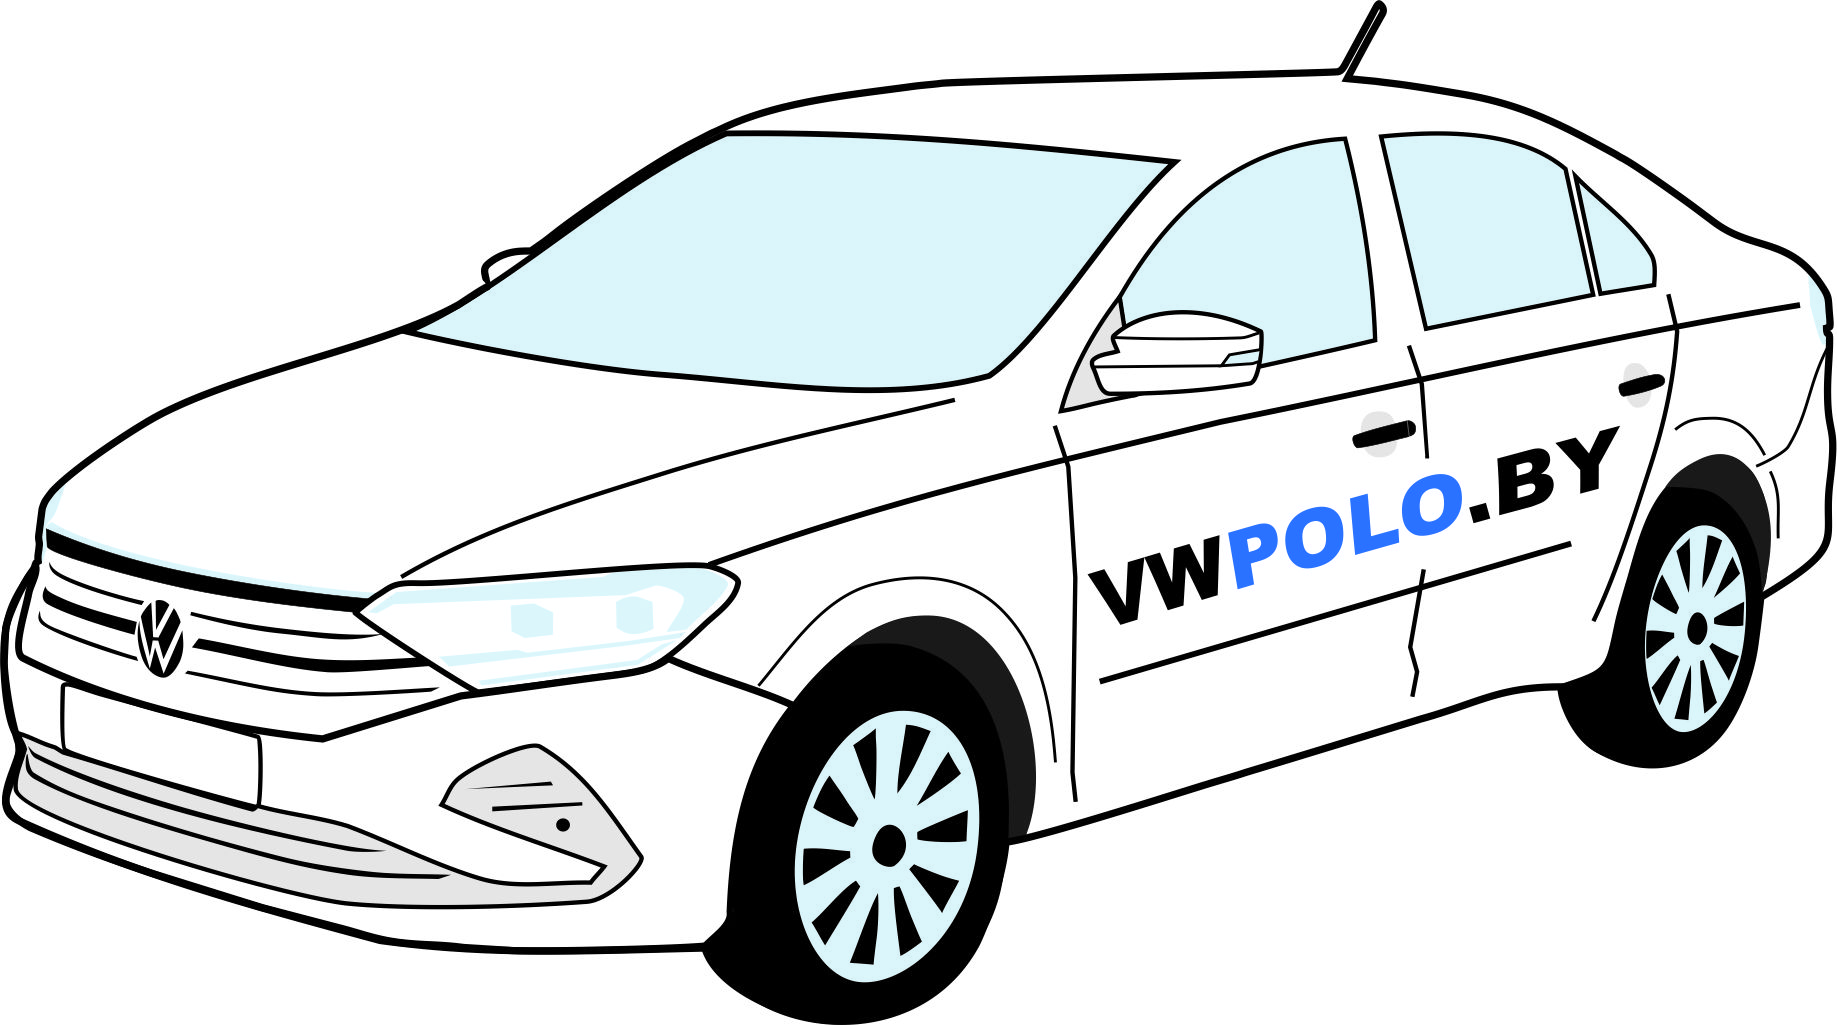 VWPolo.by